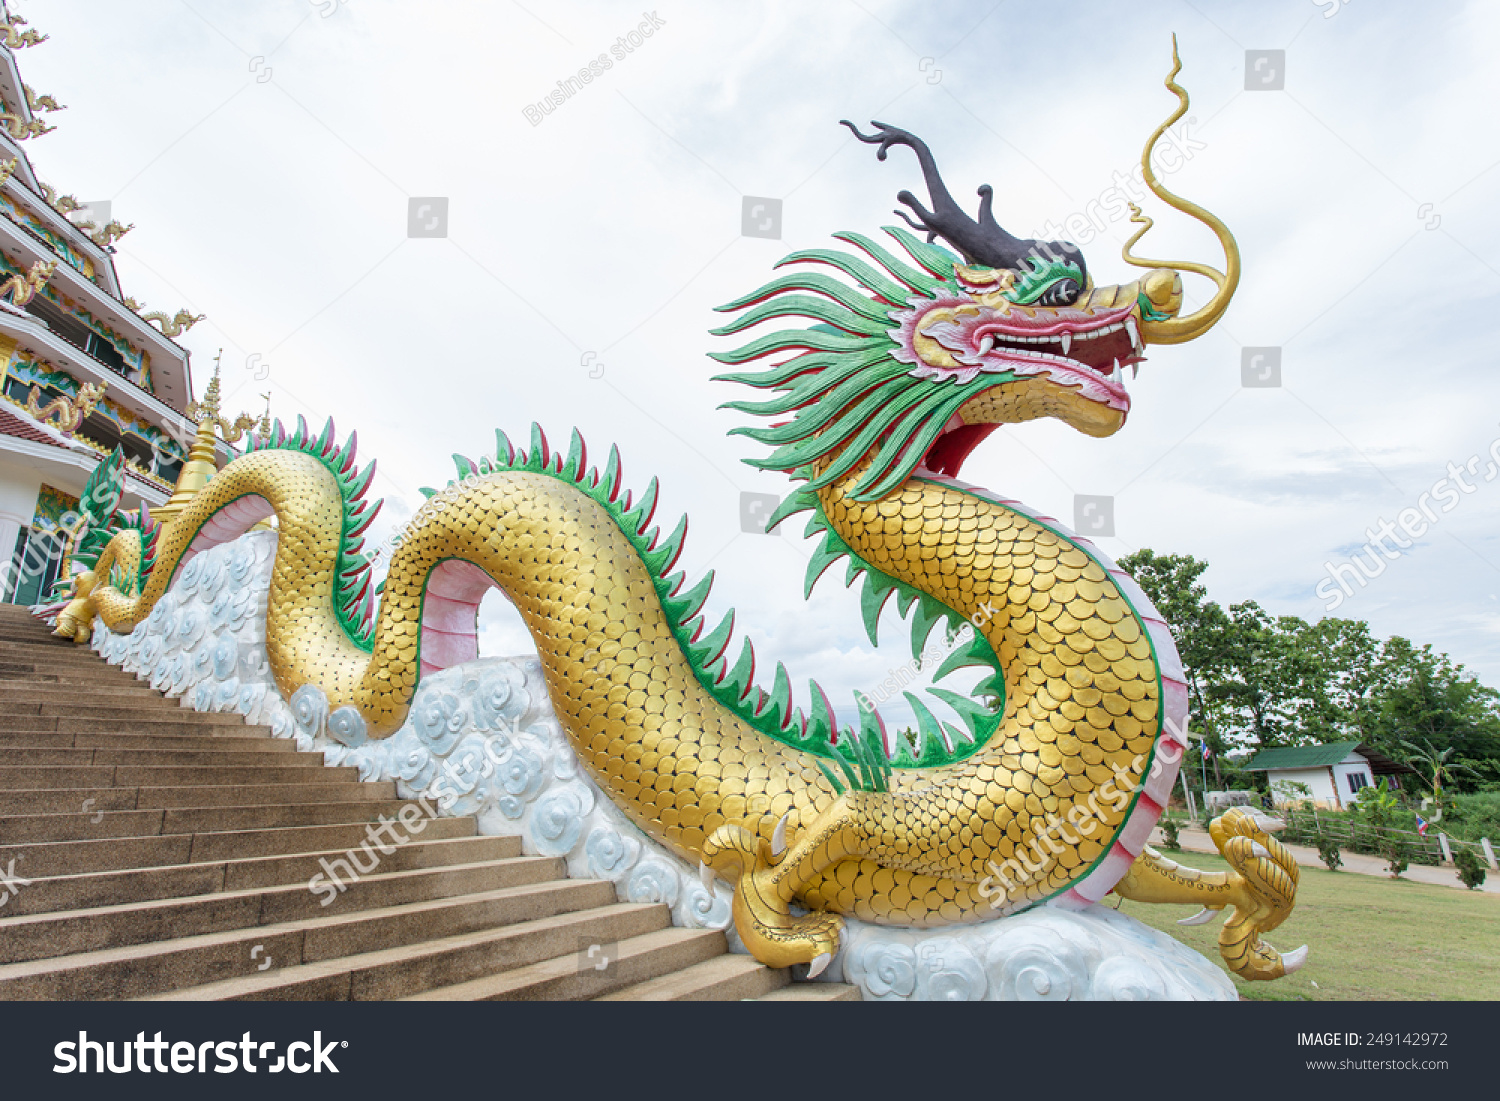 Giant Dragon Statue Royalty Free Giant Chinese Style Dragon Statue 249142972 Stock